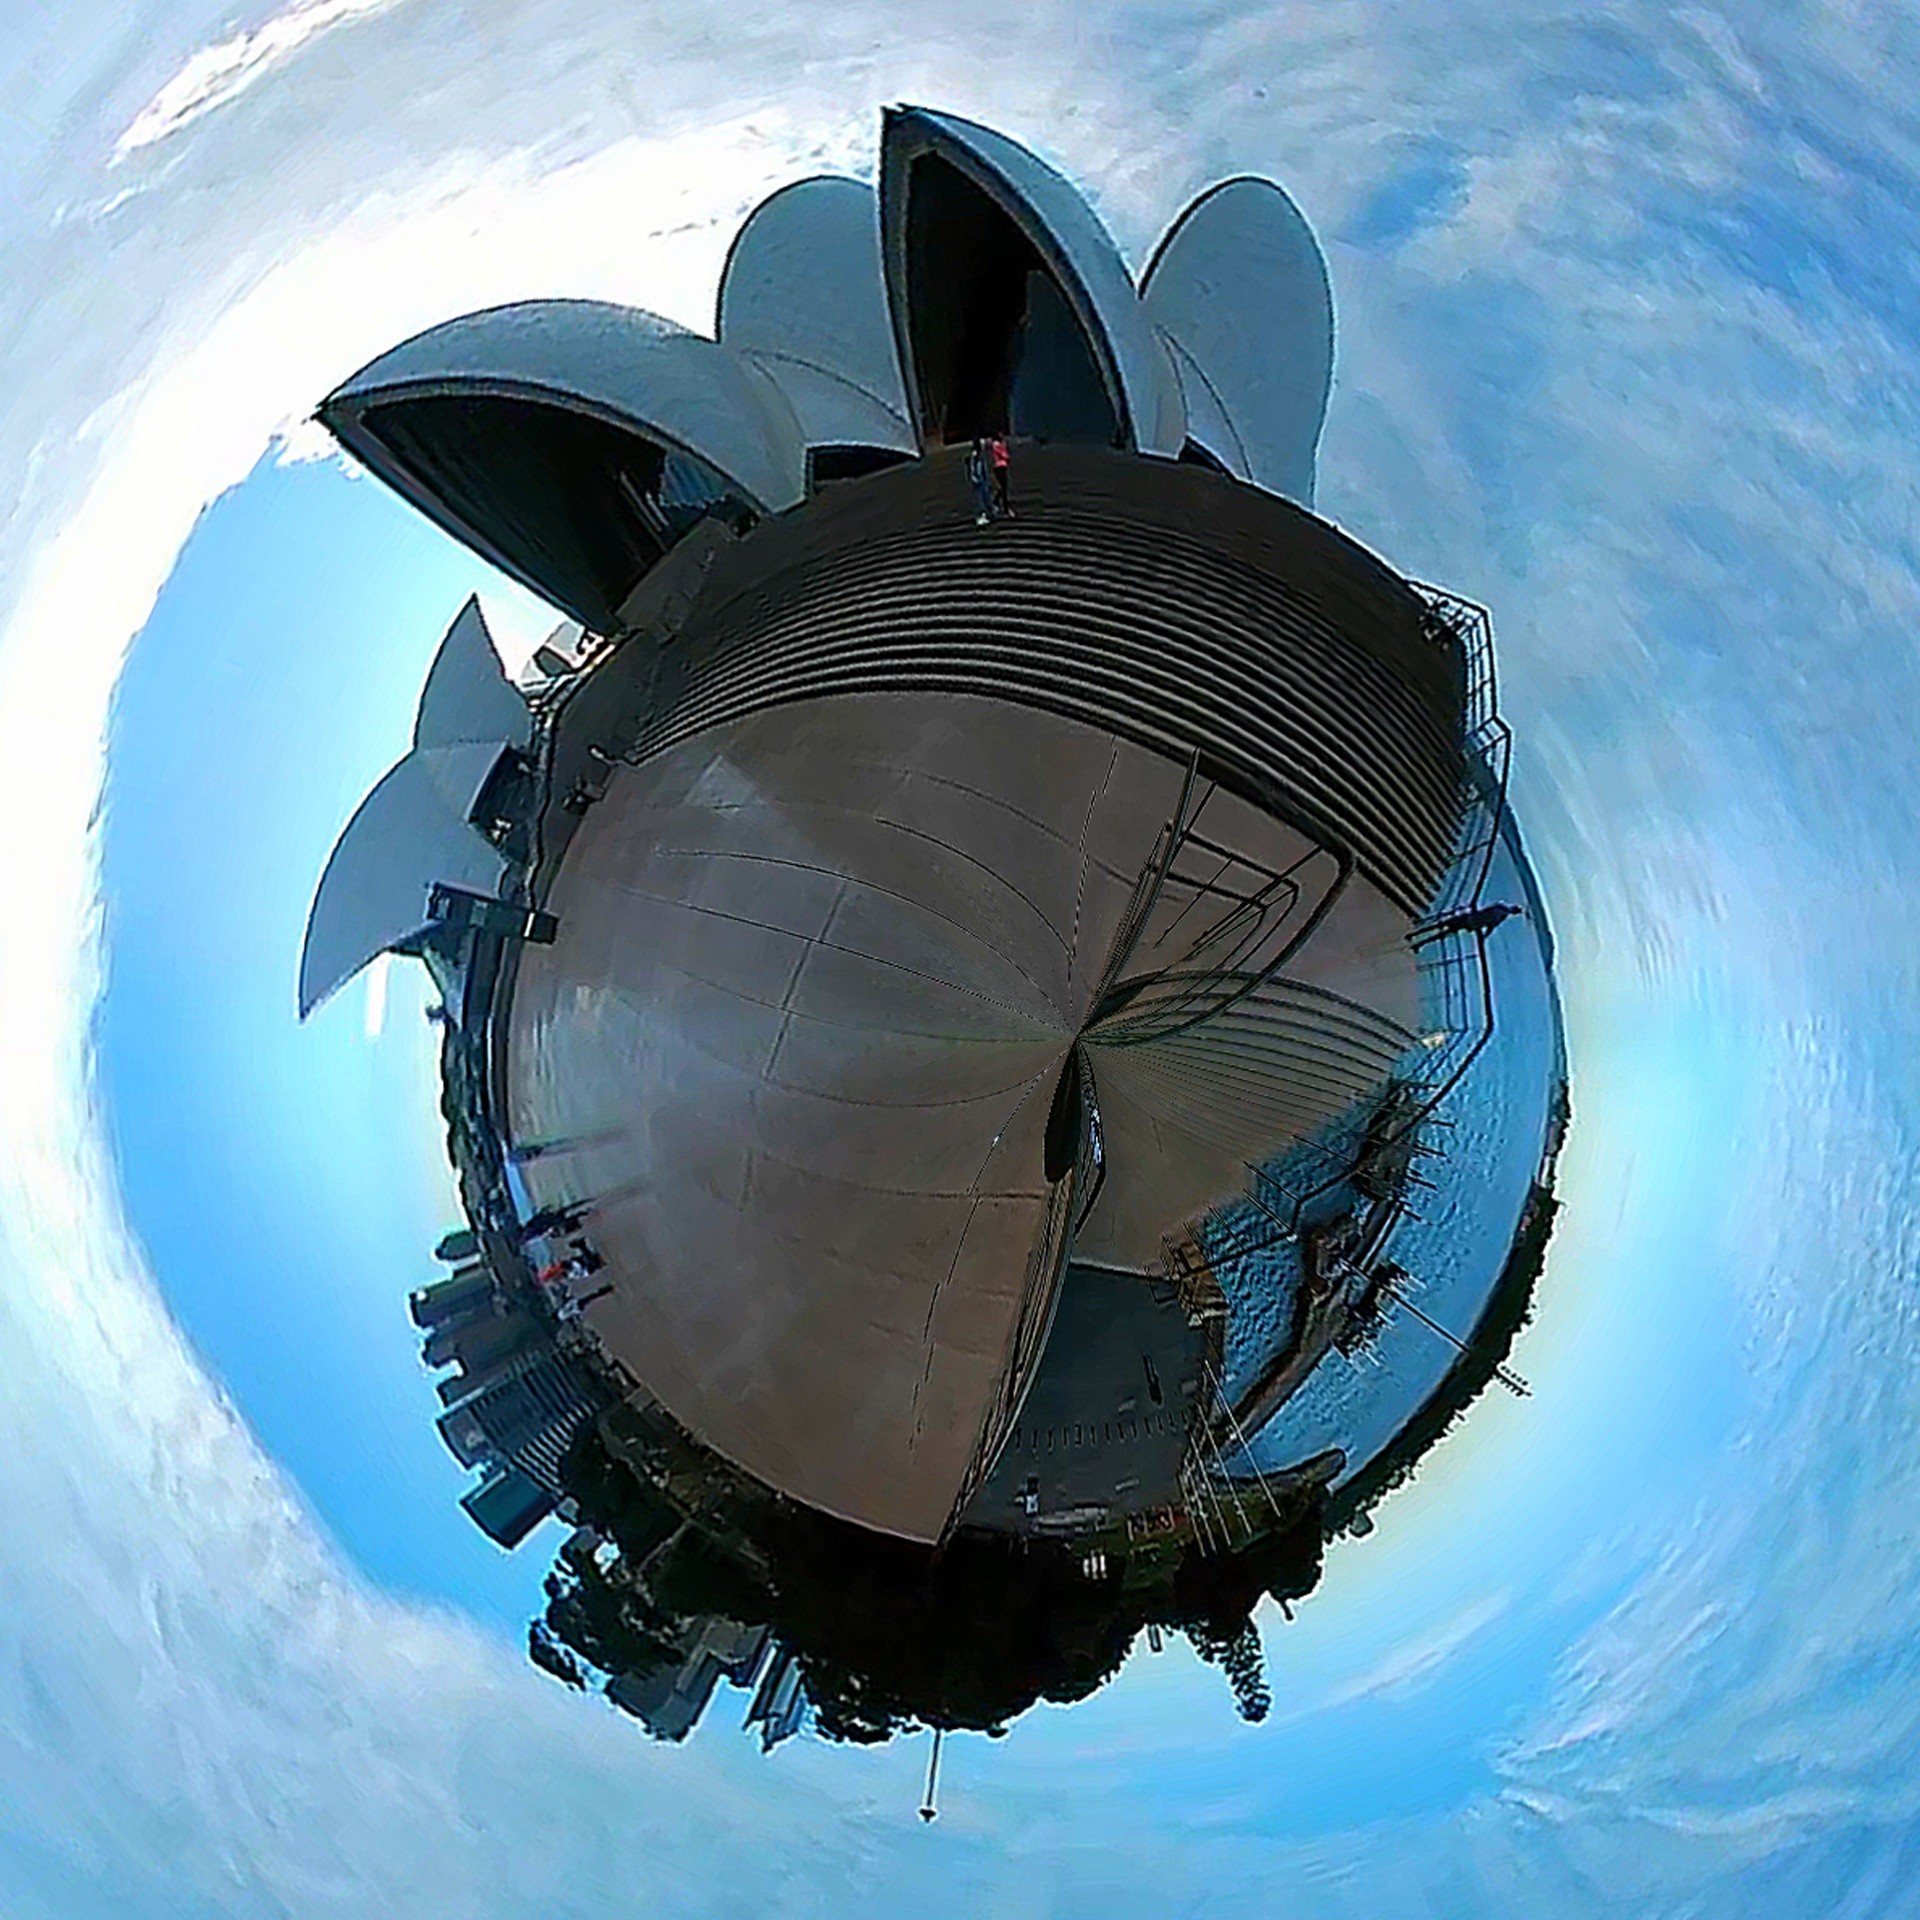 A 360-image taken on LG 360 CAM at the Opera House in Sydney, Australia